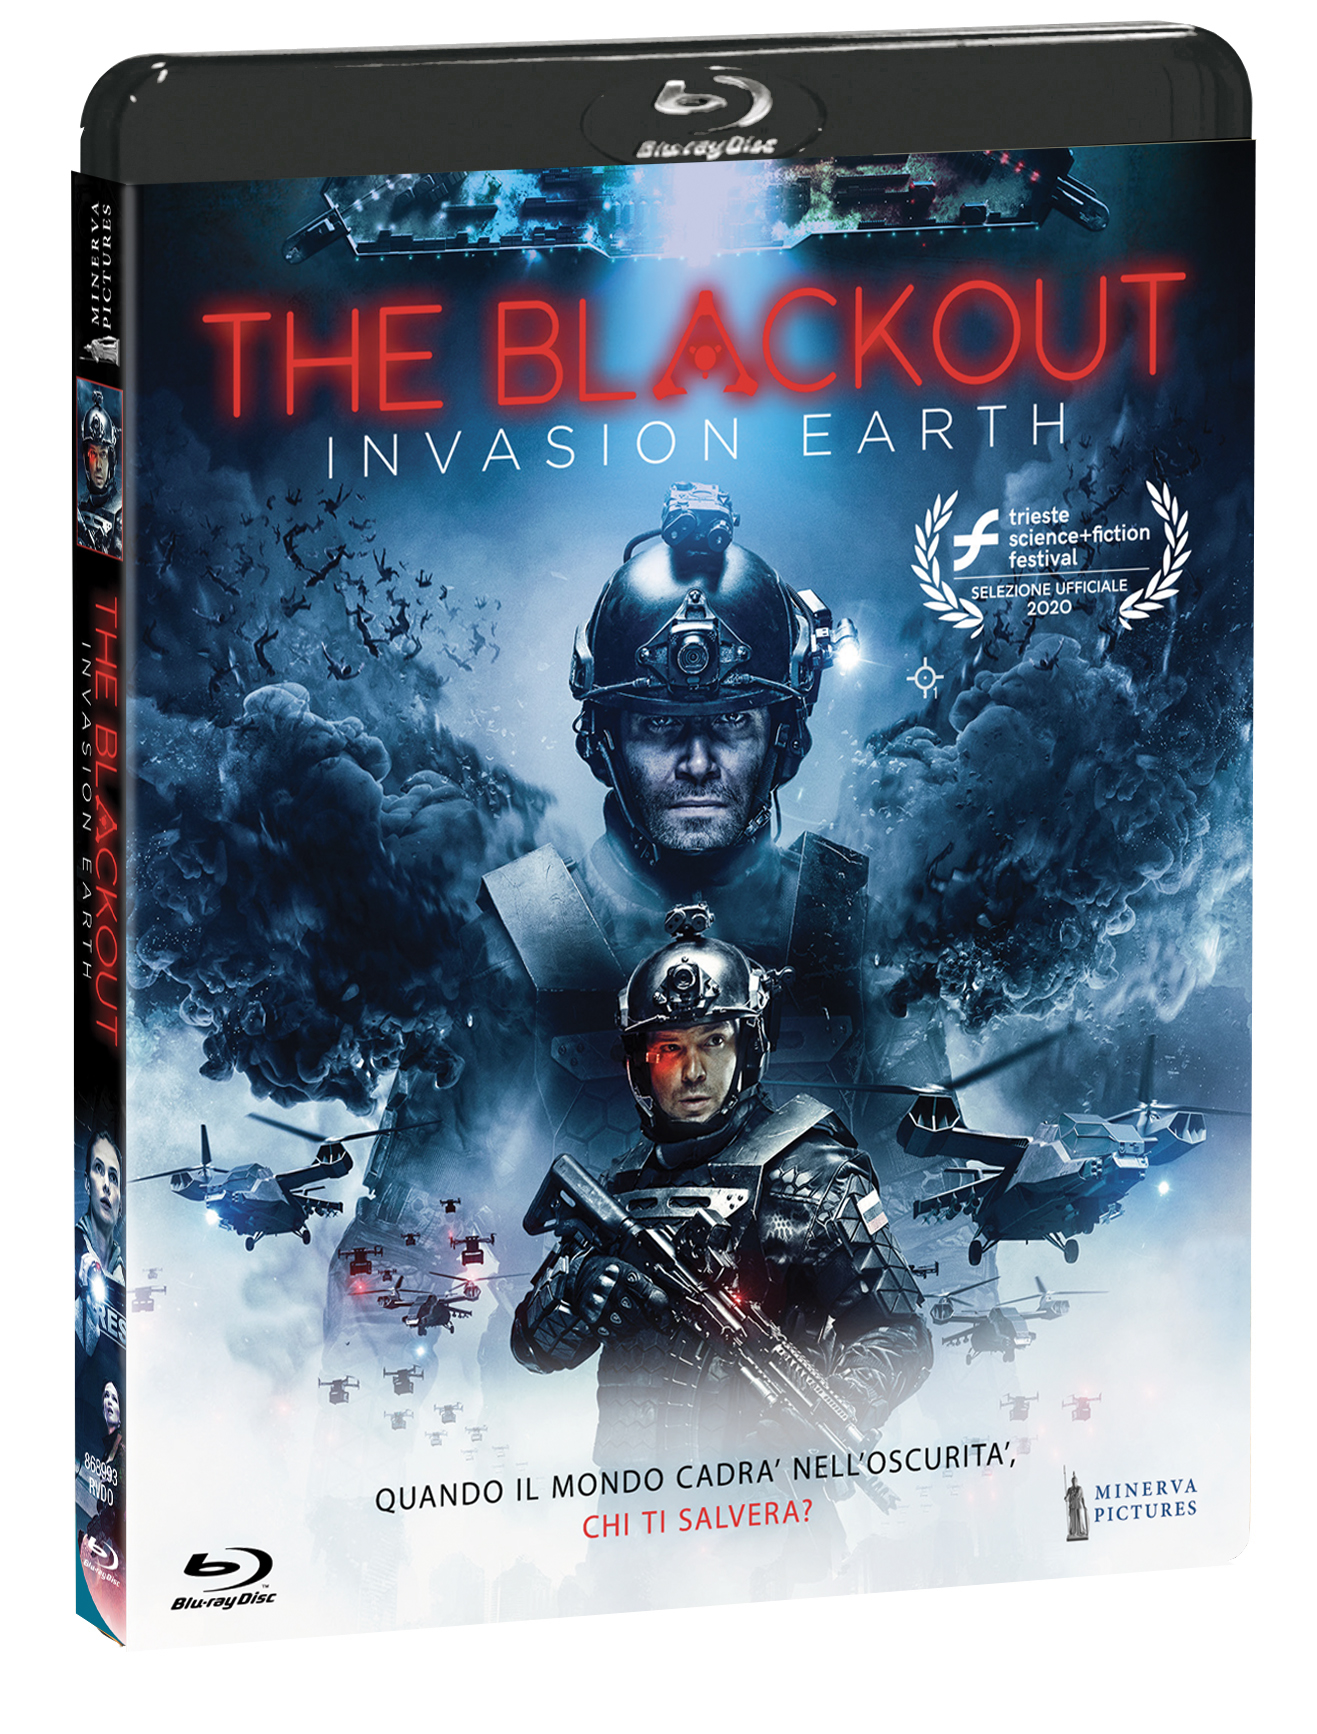 THE BLACKOUT - INVASION HEART - BLU RAY